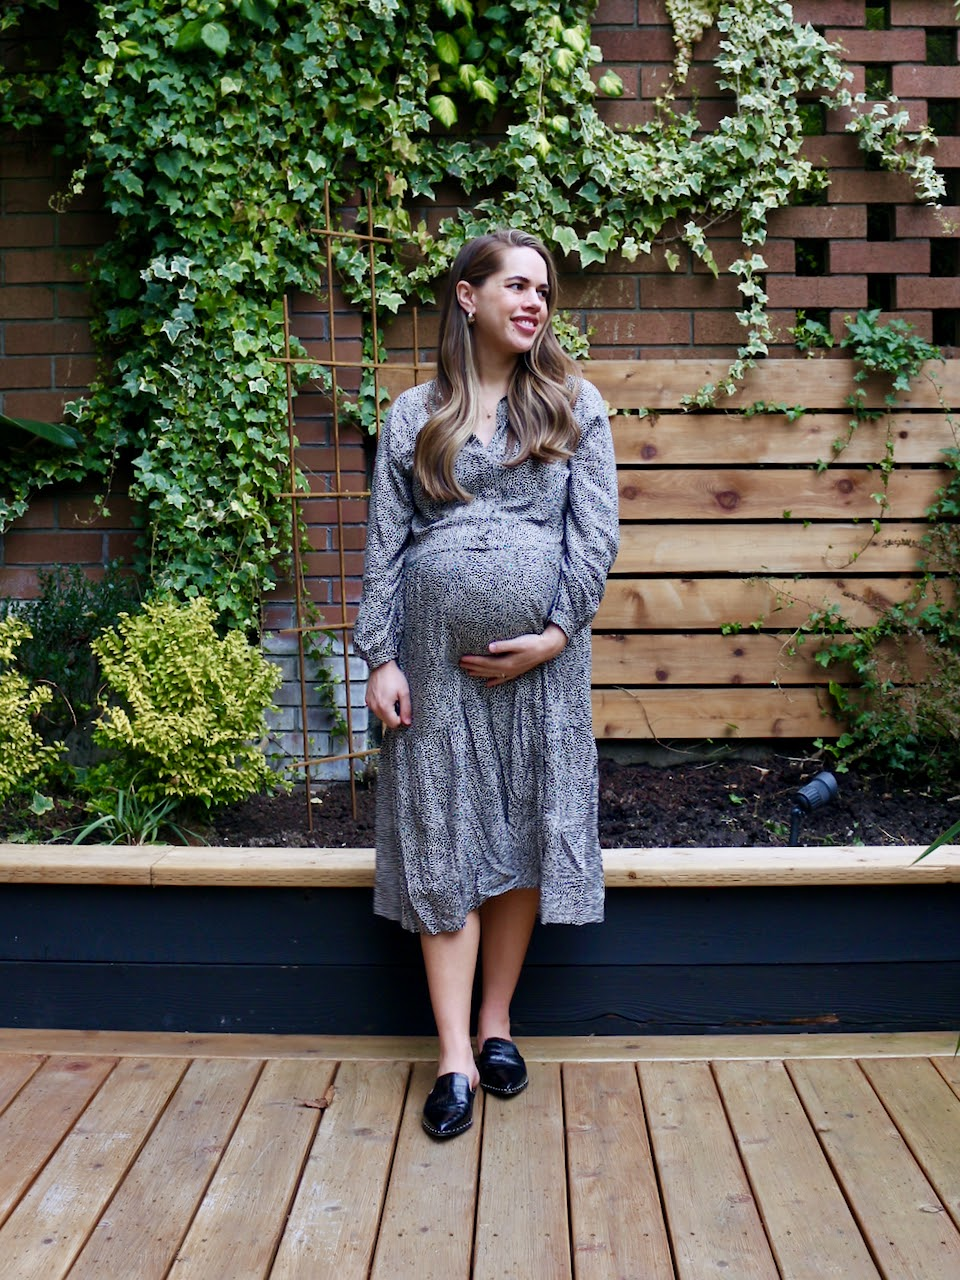 Jules in Flats - Leopard Print Maxi Dress (Business Casual Workwear on a Budget)